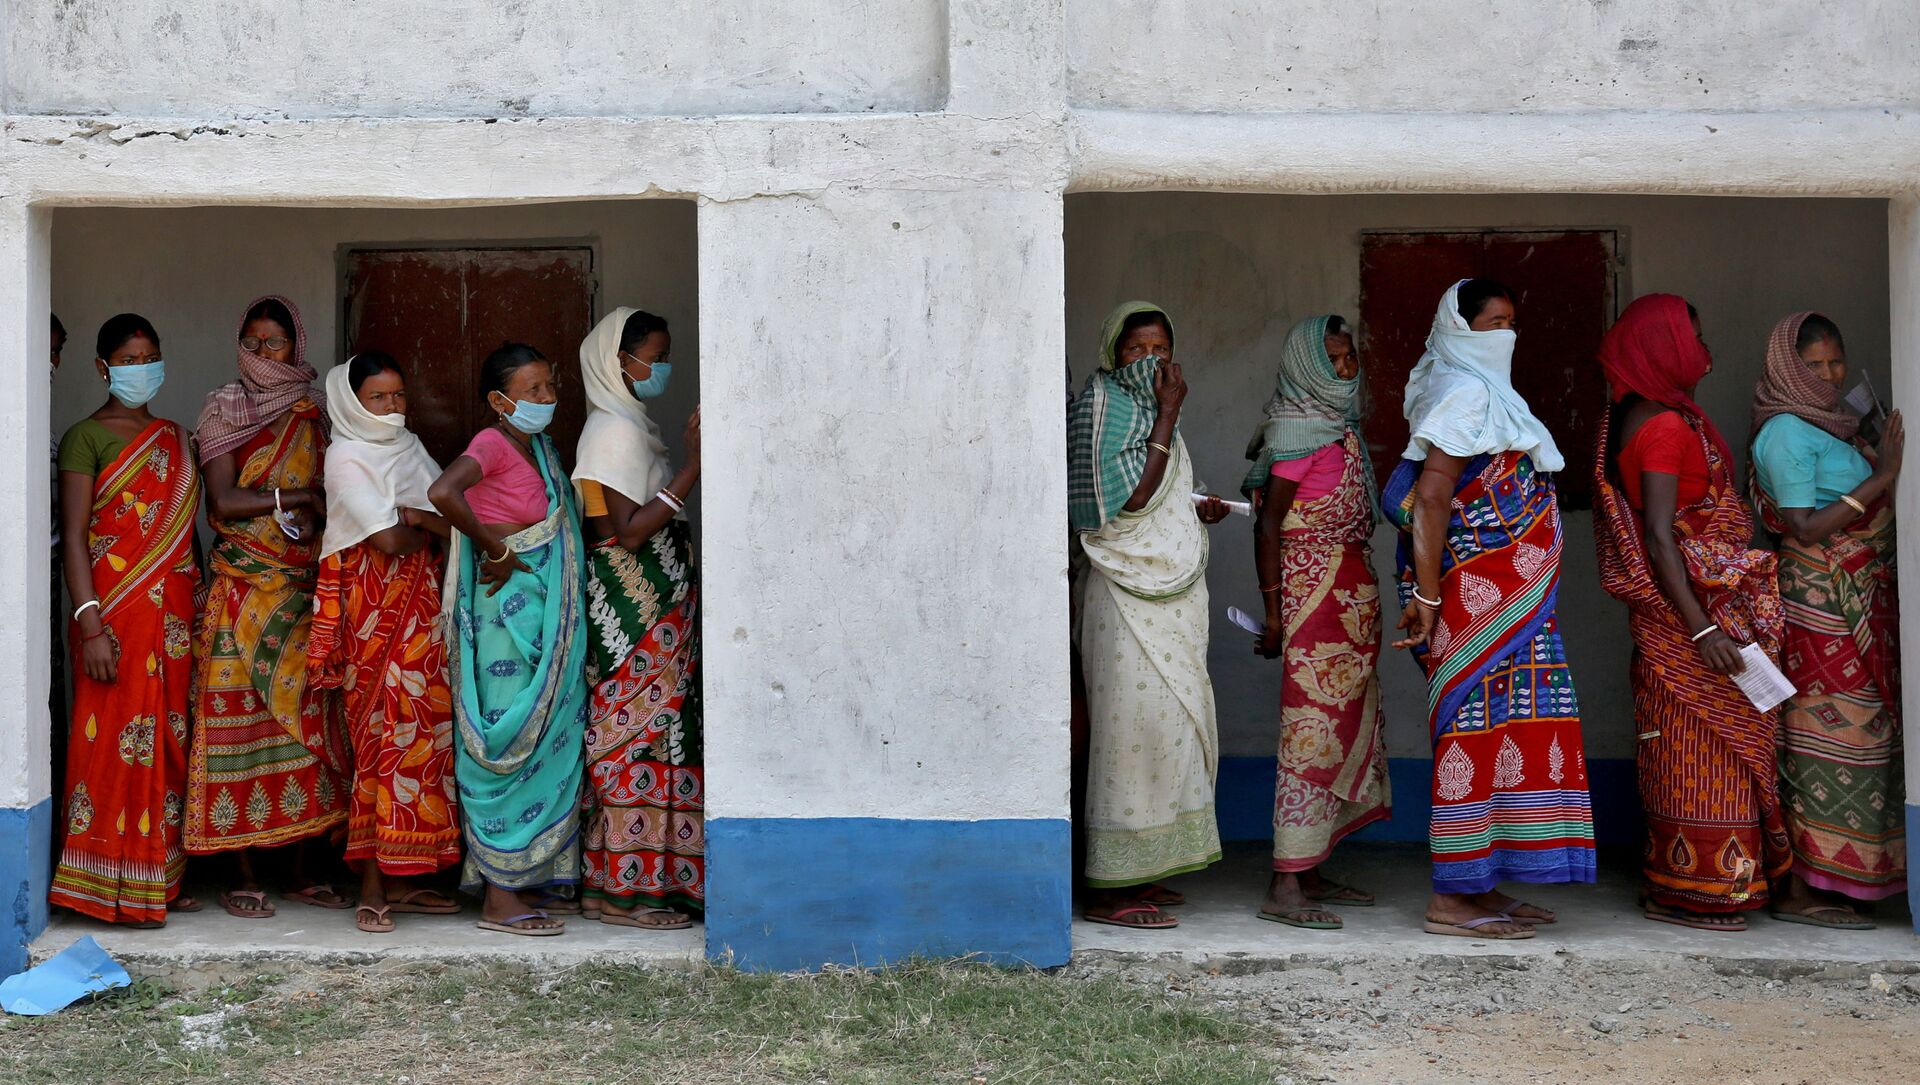 Women wait in line to cast their vote at a polling booth during the first phase of West Bengal's state election in Purulia district, India - Sputnik International, 1920, 06.04.2021